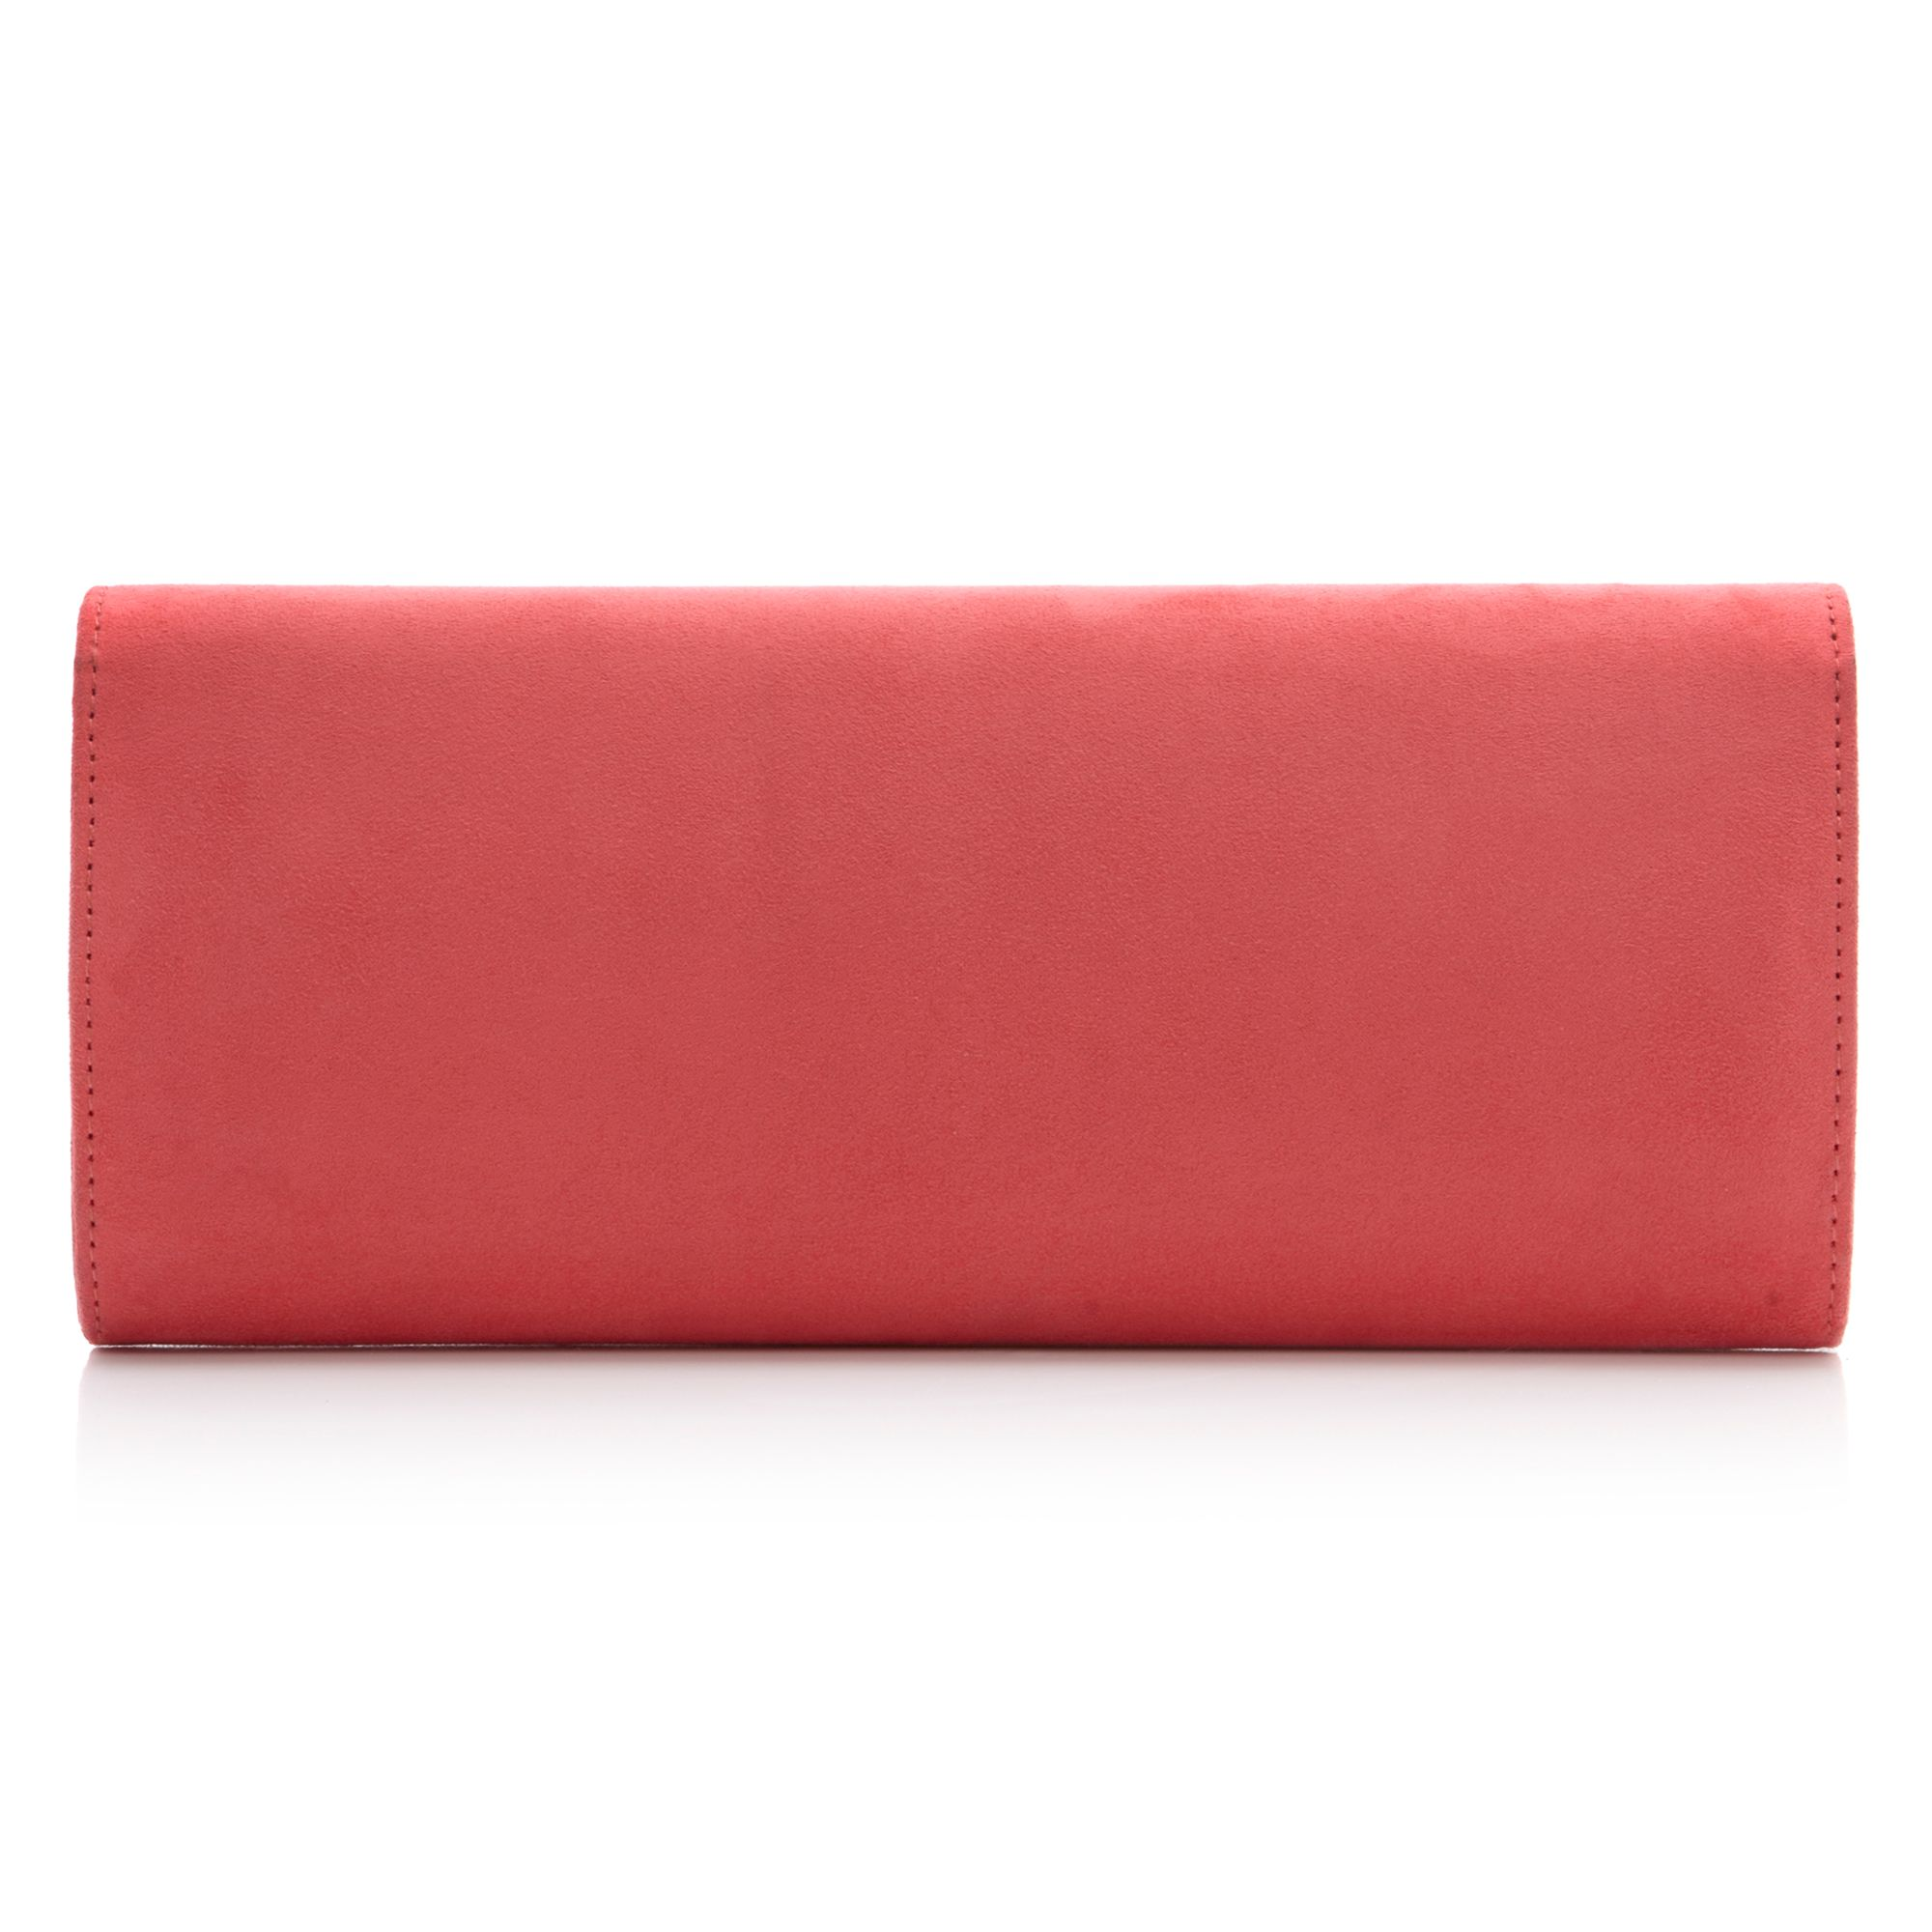 Brantum bow detail clutch bag